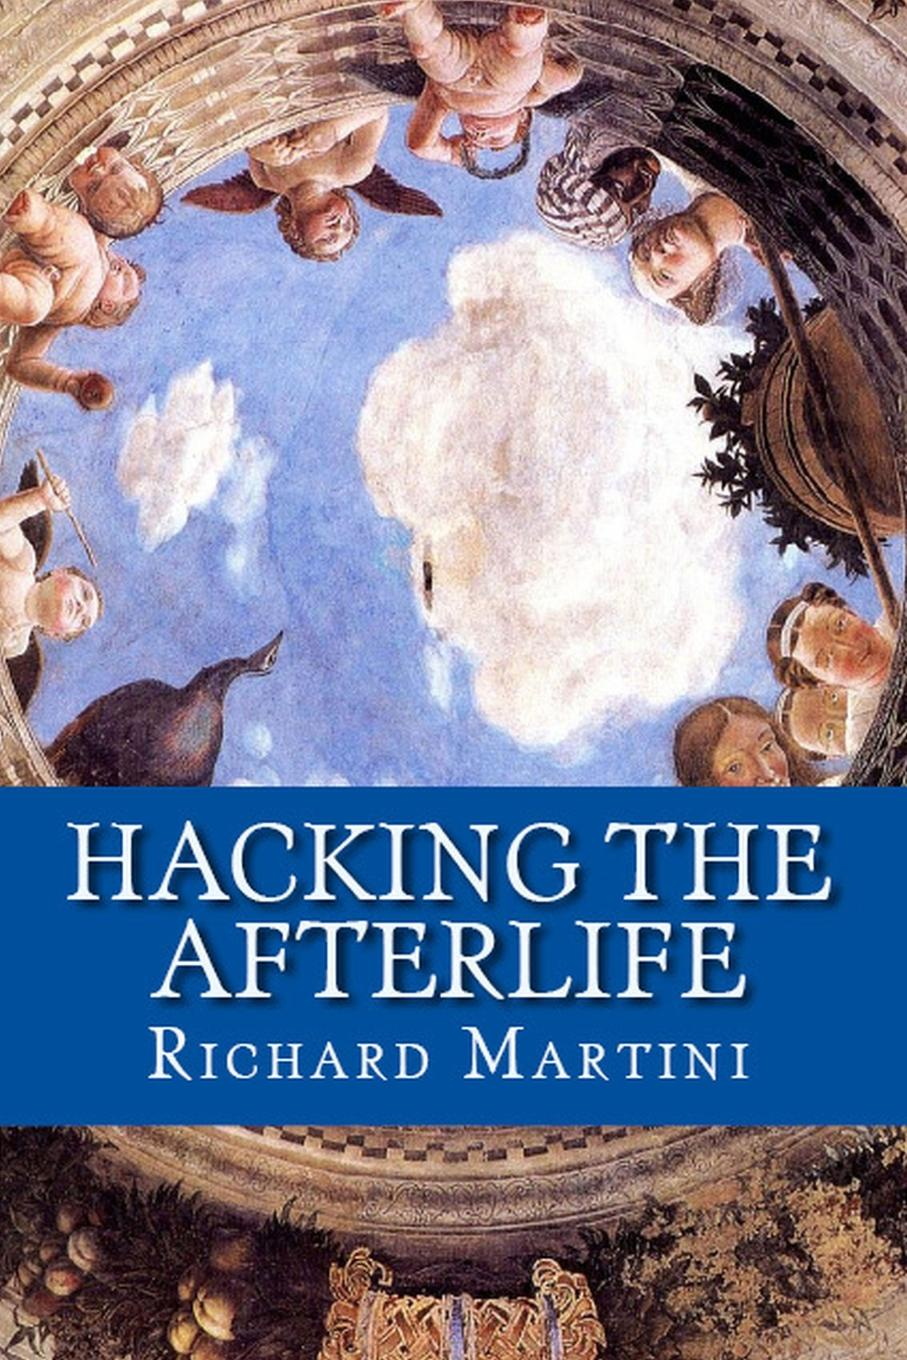 RICHARD MARTINI Hacking the Afterlife. Practical Advice from the Flipside flipside flipsyde state of survival